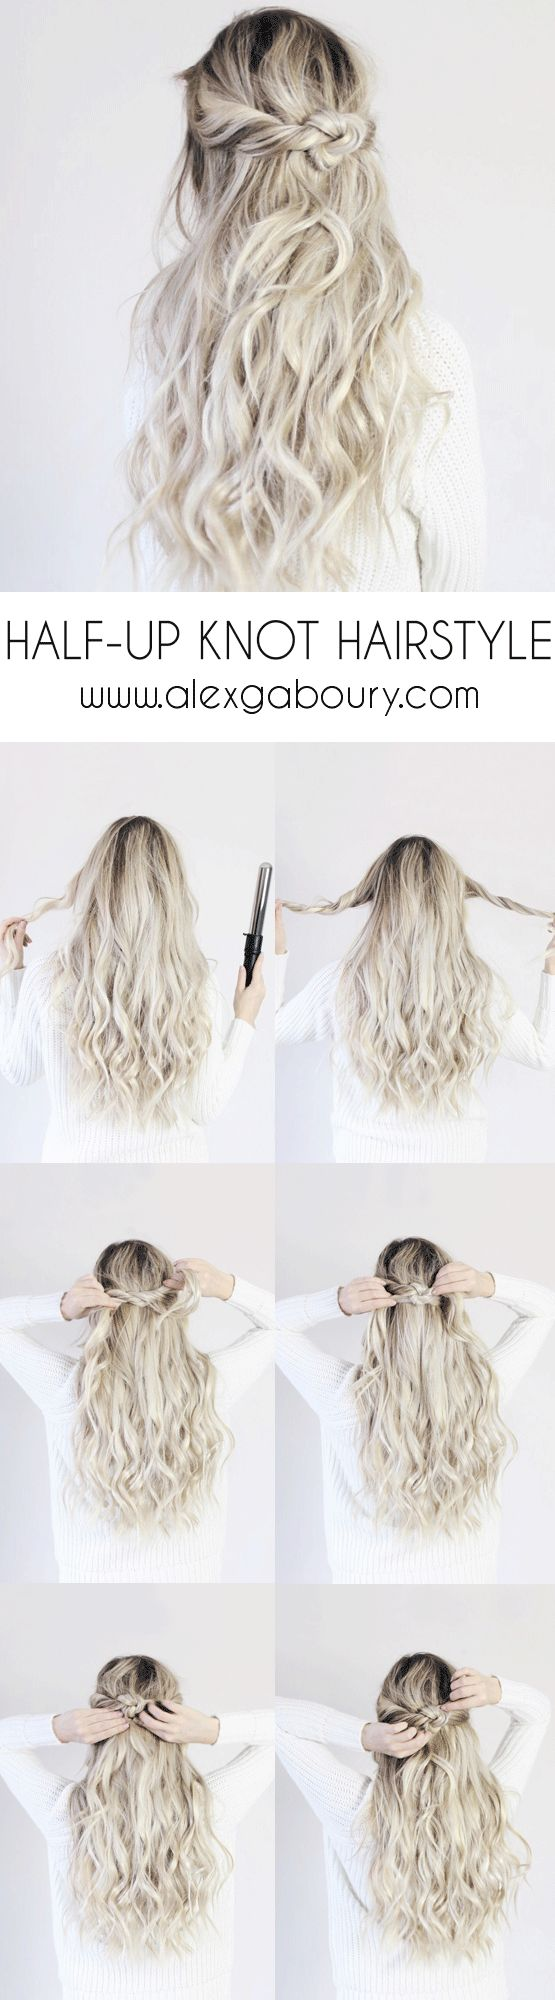 Best 25 hair extension hairstyles ideas on pinterest extension hair extension clips pmusecretfo Choice Image